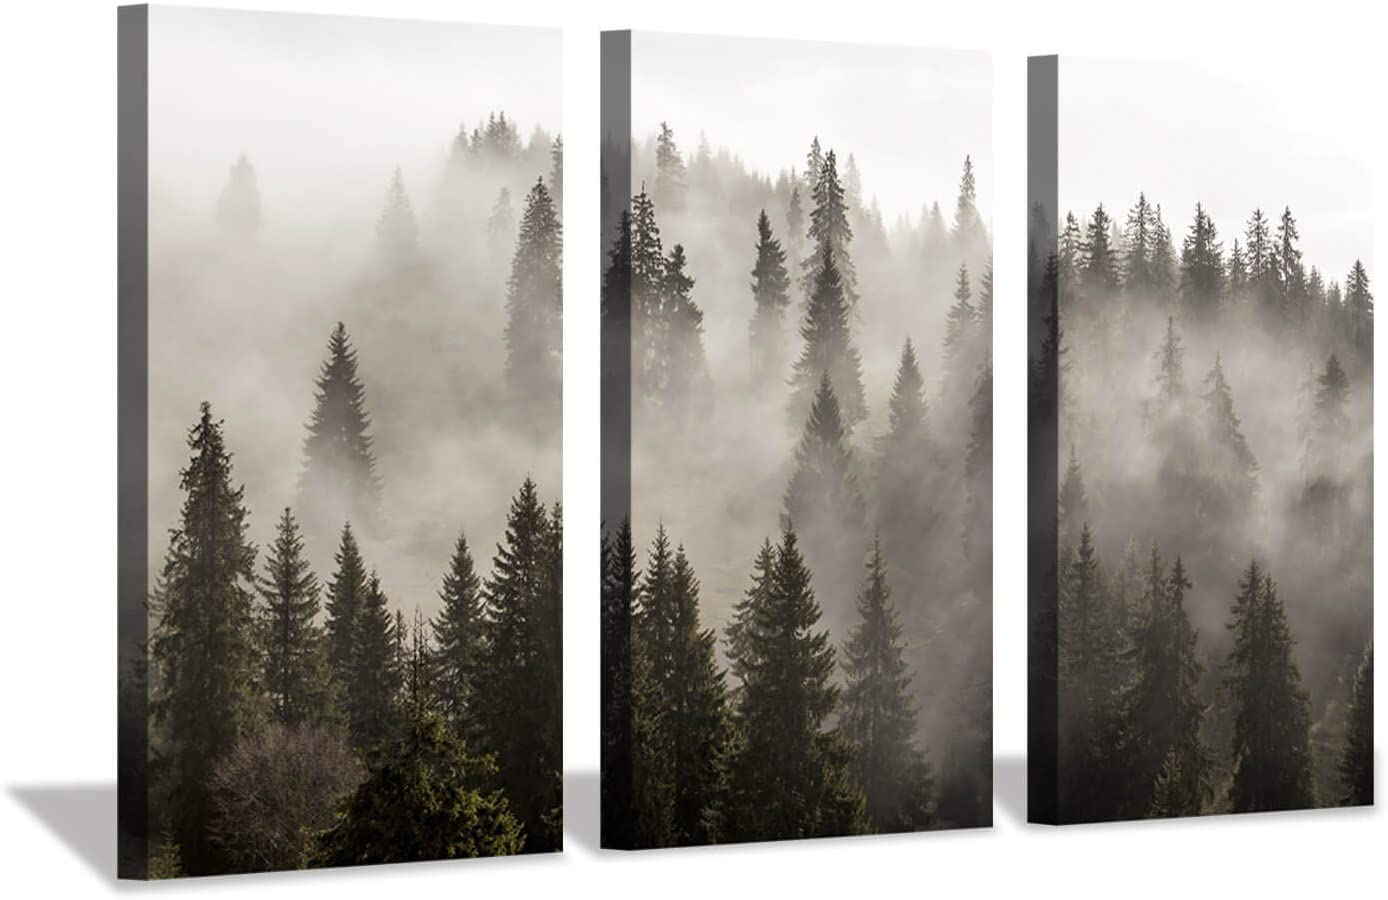 """Hardy Gallery Foggy Forest Picture Wall Art: Landscape Painting Misty Pine Trees Artwork Print on Canvas for Living Rooms Office (34""""x20""""x3pcs)"""